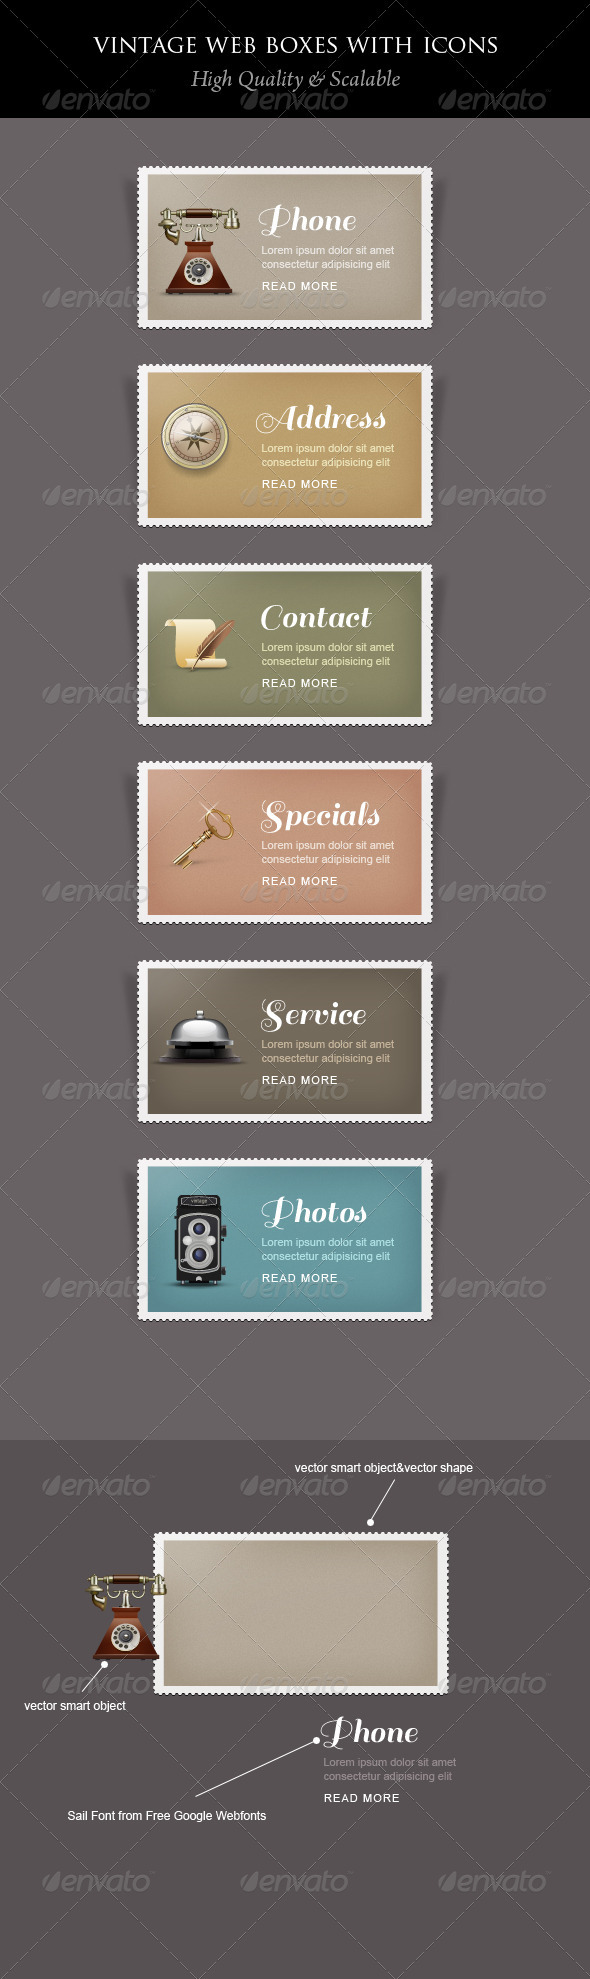 Vintage Content Boxes with Icons - Banners & Ads Web Elements